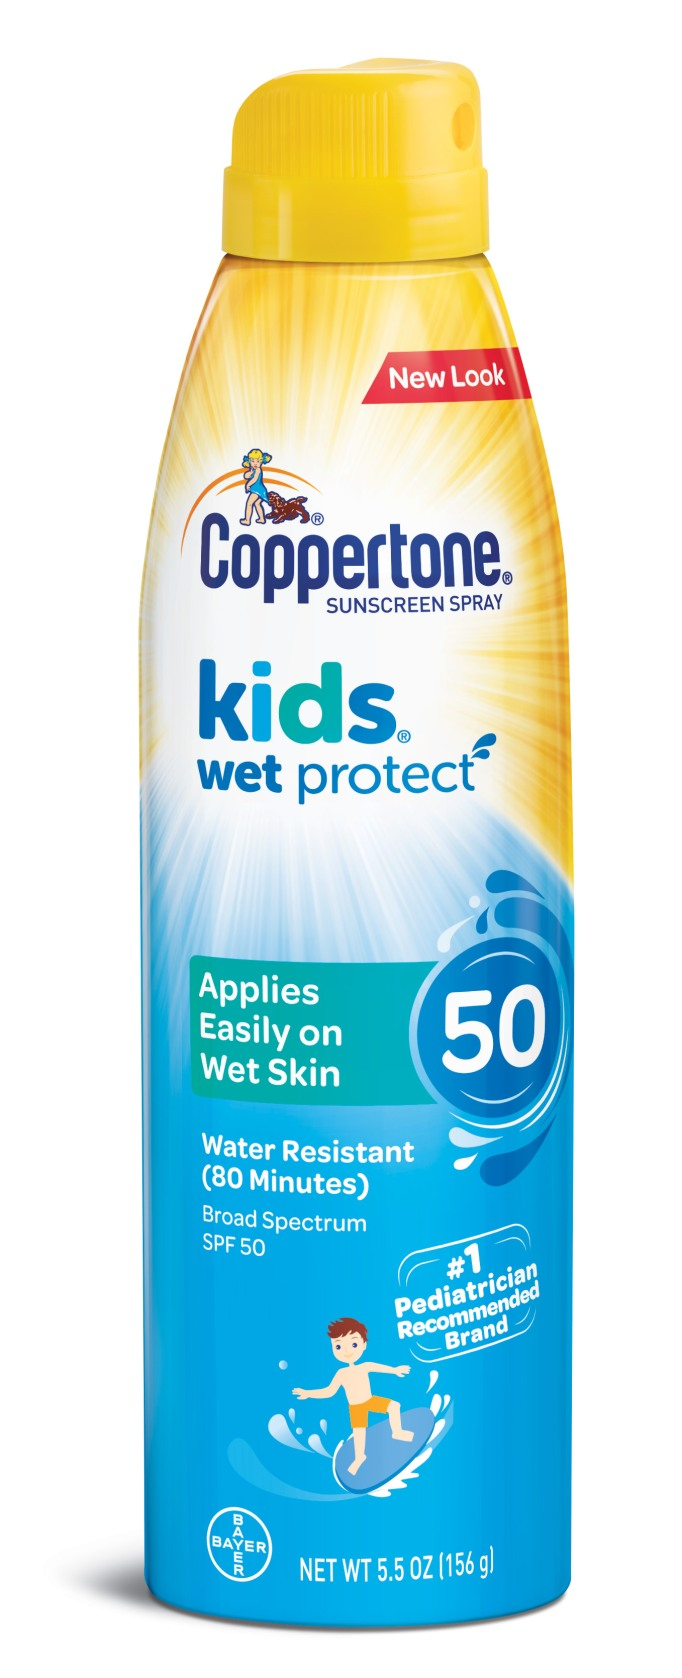 Coppertone Kids Wet Protect sunscreen spray, SPF 50